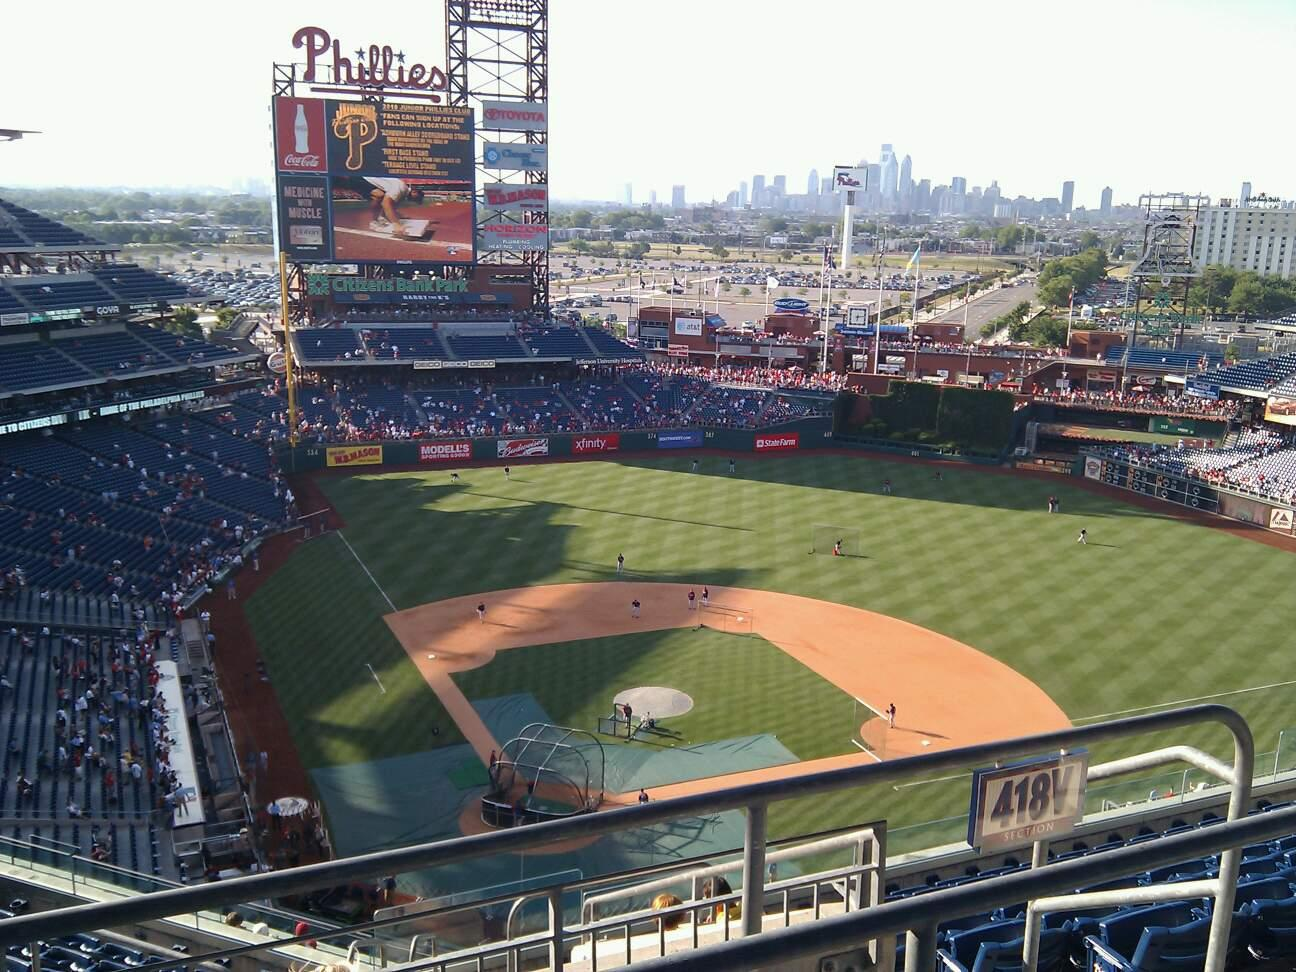 Citizens Bank Park Section 418 Row 12 Seat 26